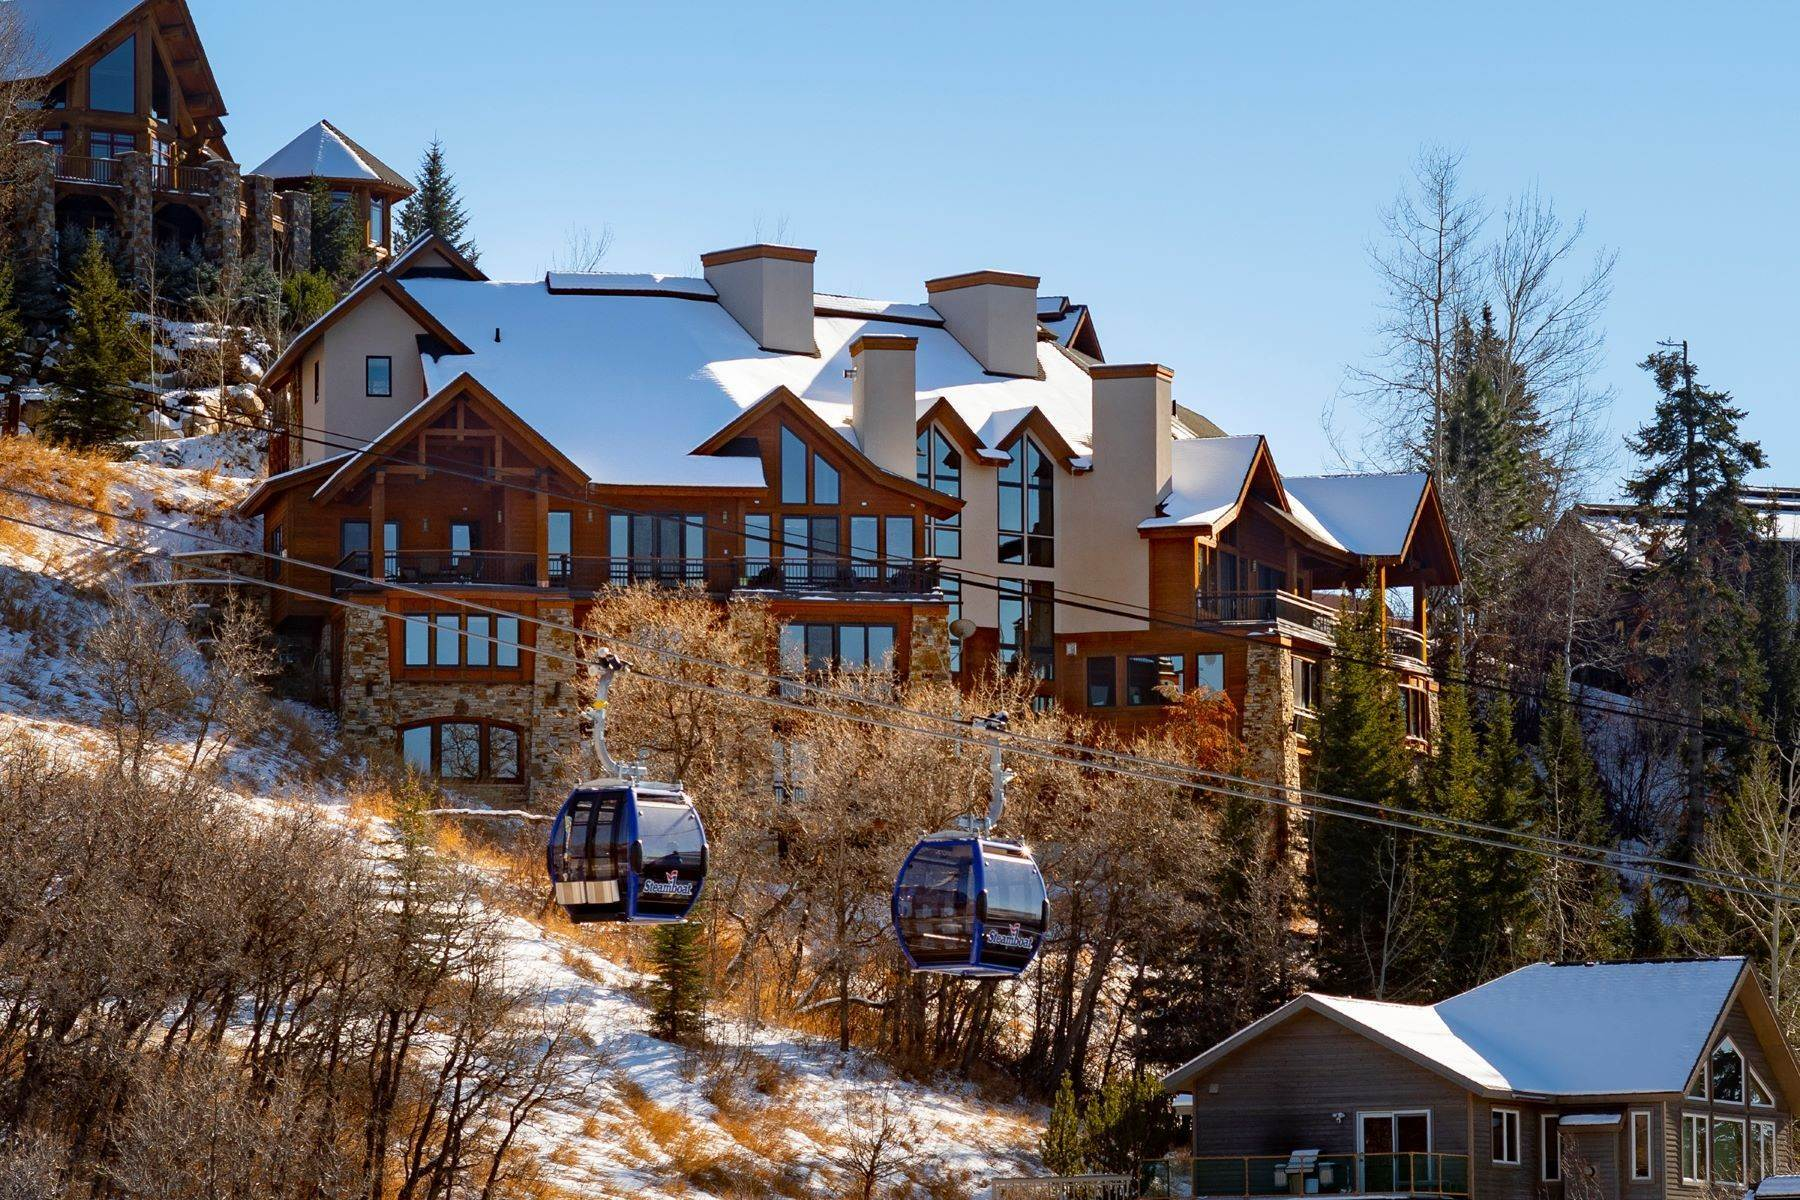 Single Family Homes for Active at Luxury Mountain Retreat Falconhead North 2605 Ski Trail Lane Steamboat Springs, Colorado 80587 United States